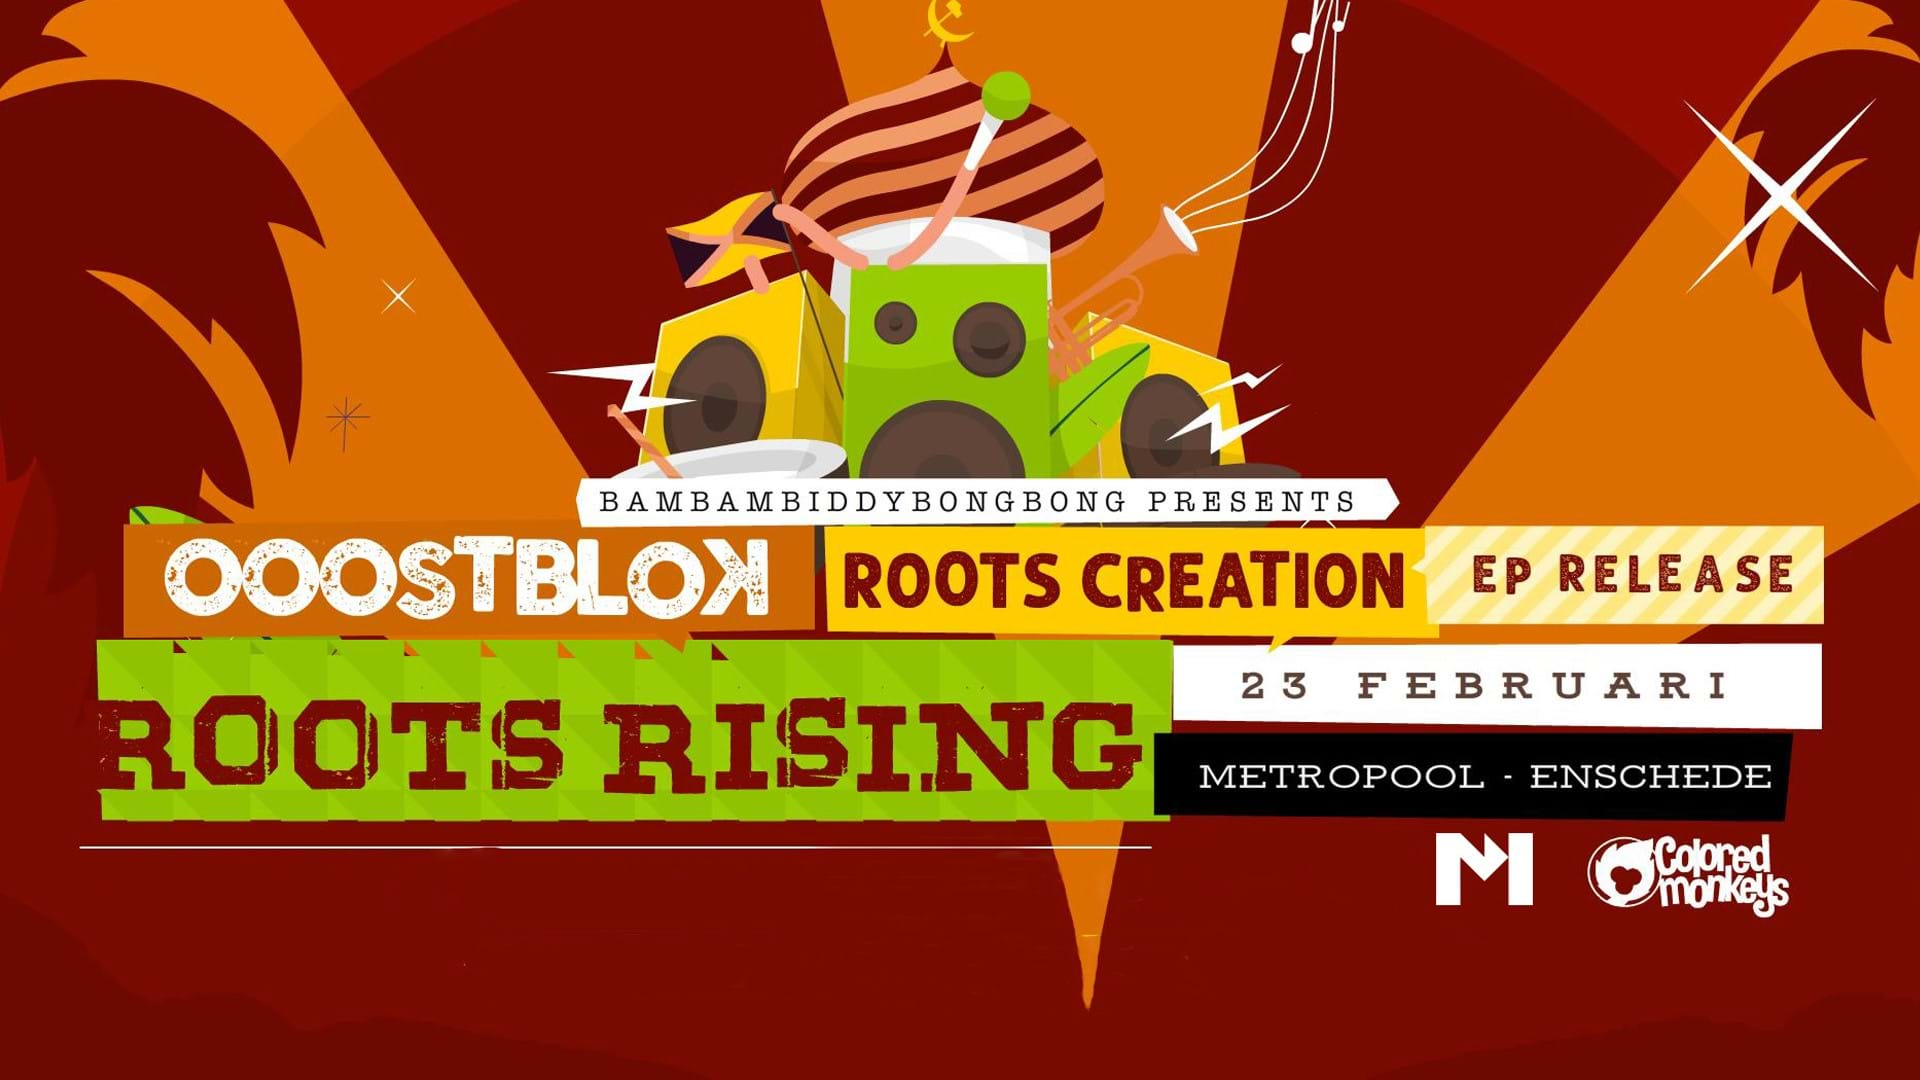 Ooostblok, Roots Creation & Roots Rising